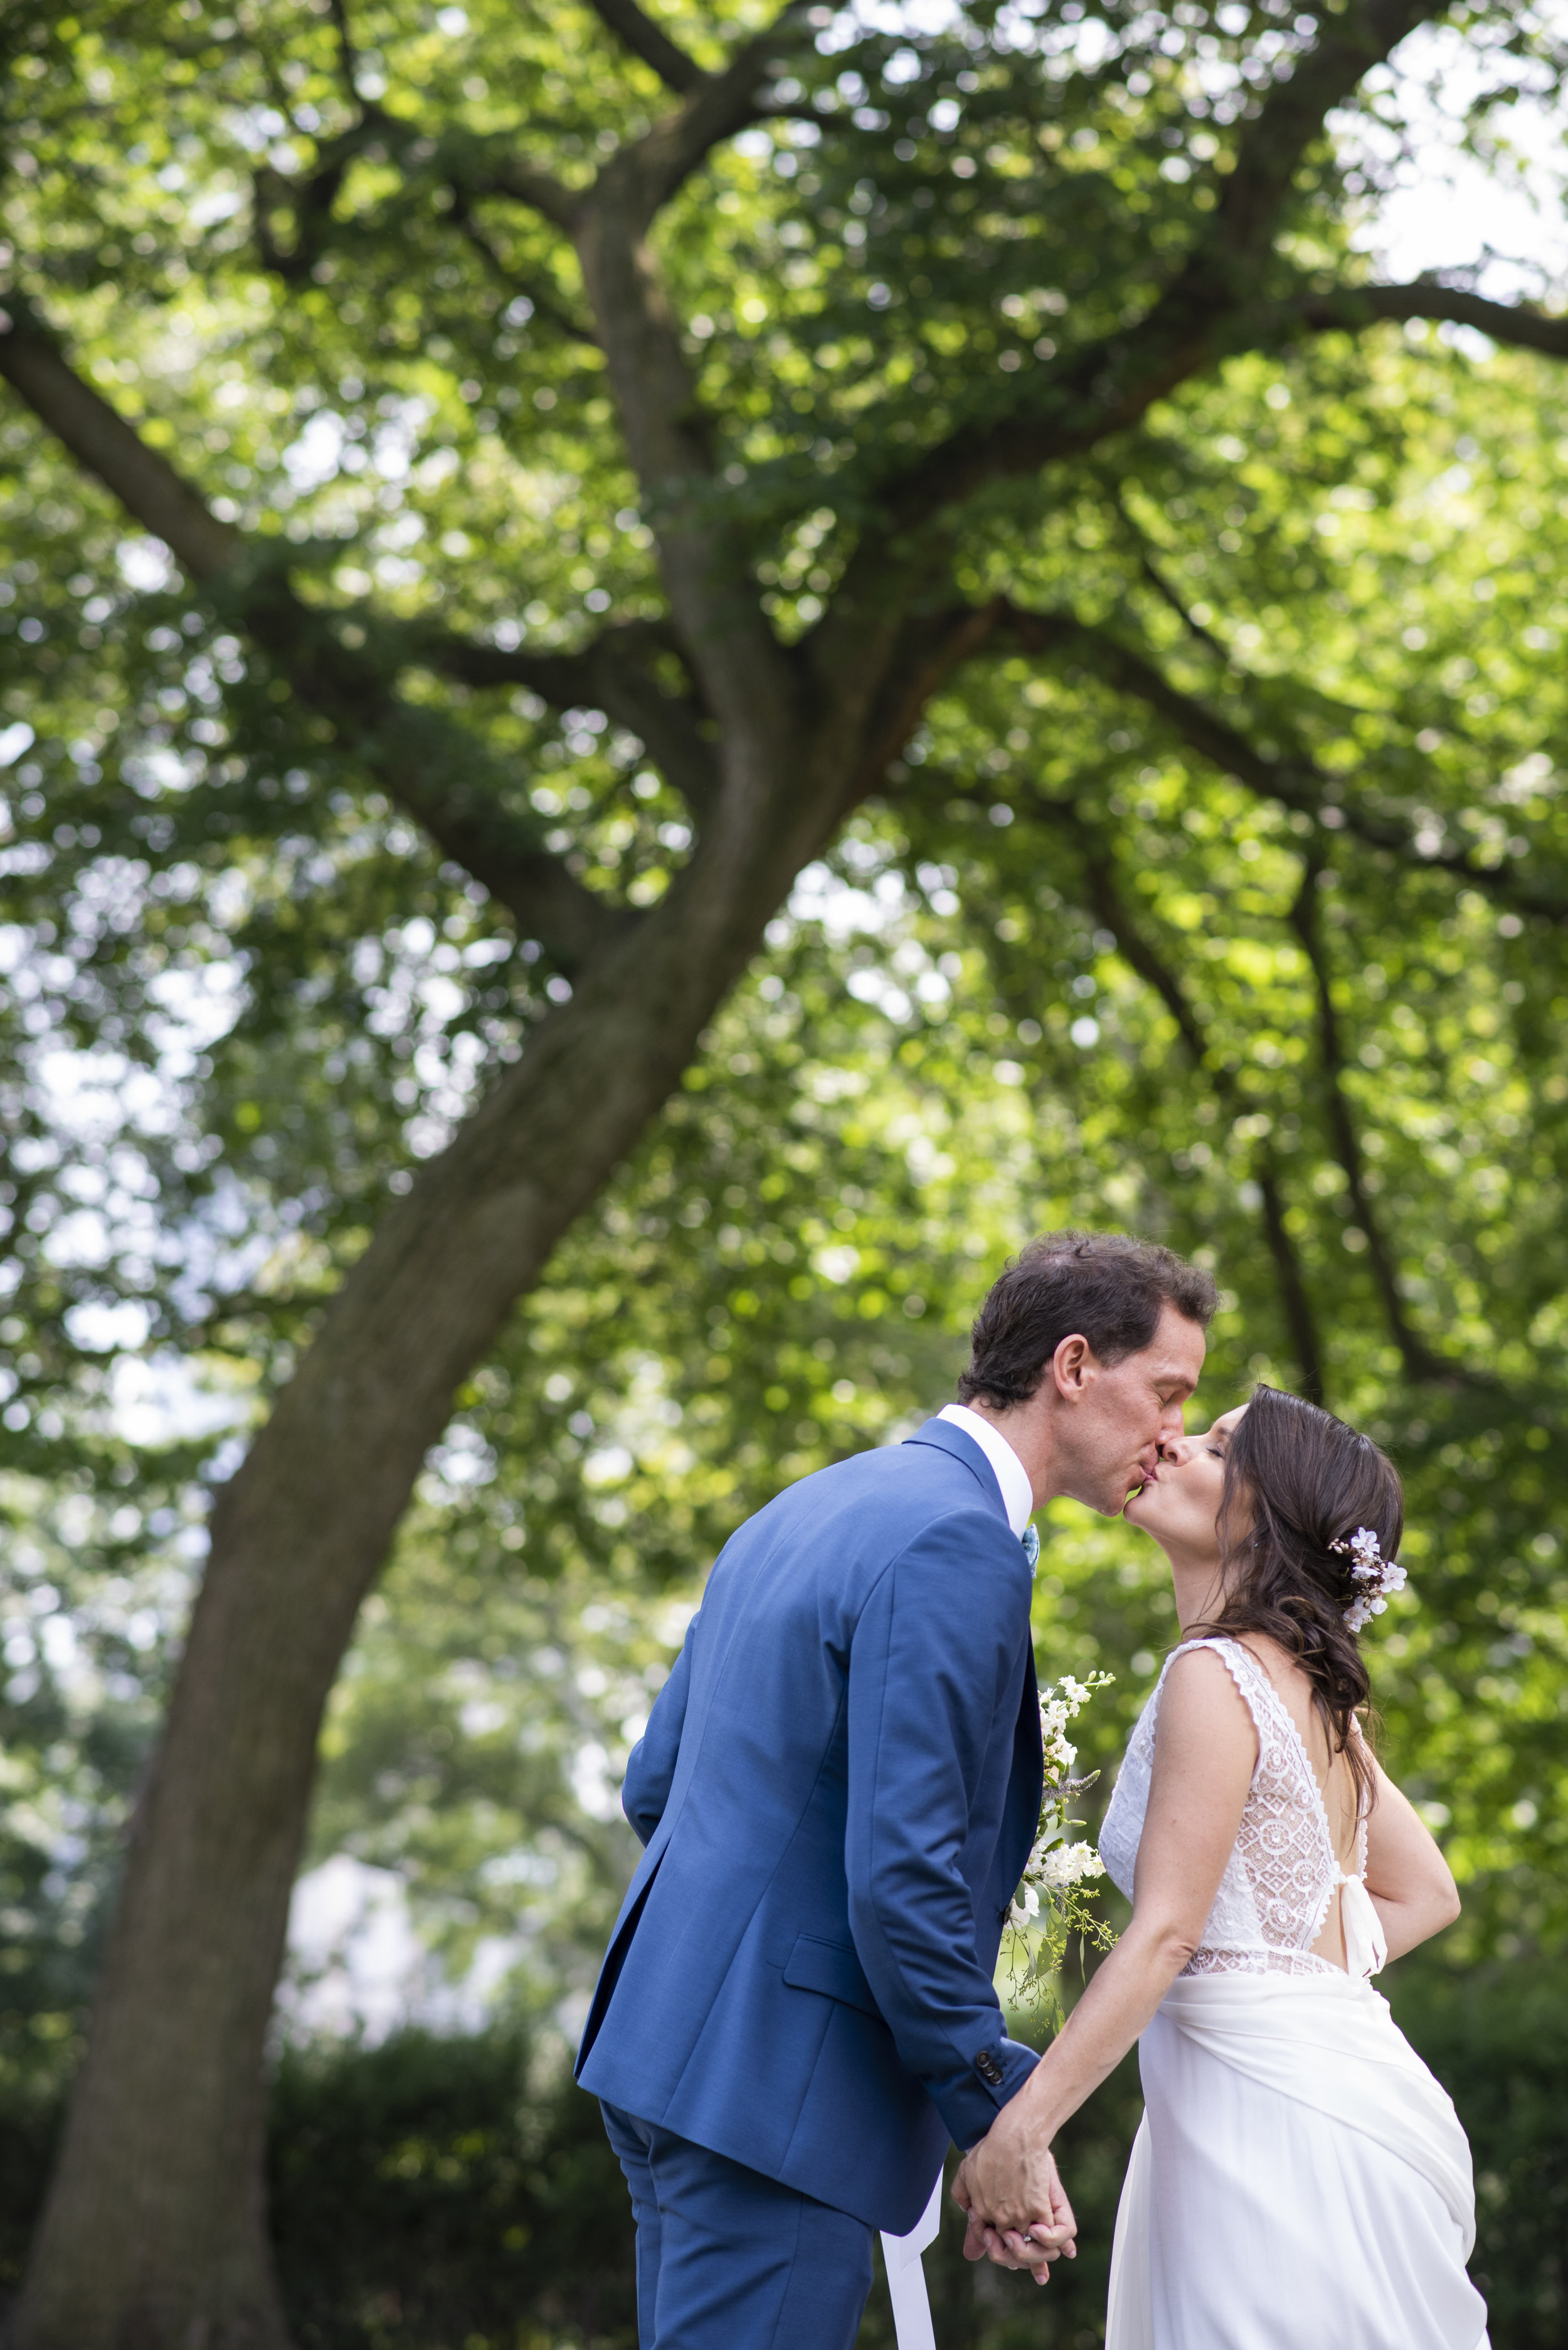 Keren & Jonathan's Wedding by Romina Hendlin-214.jpg